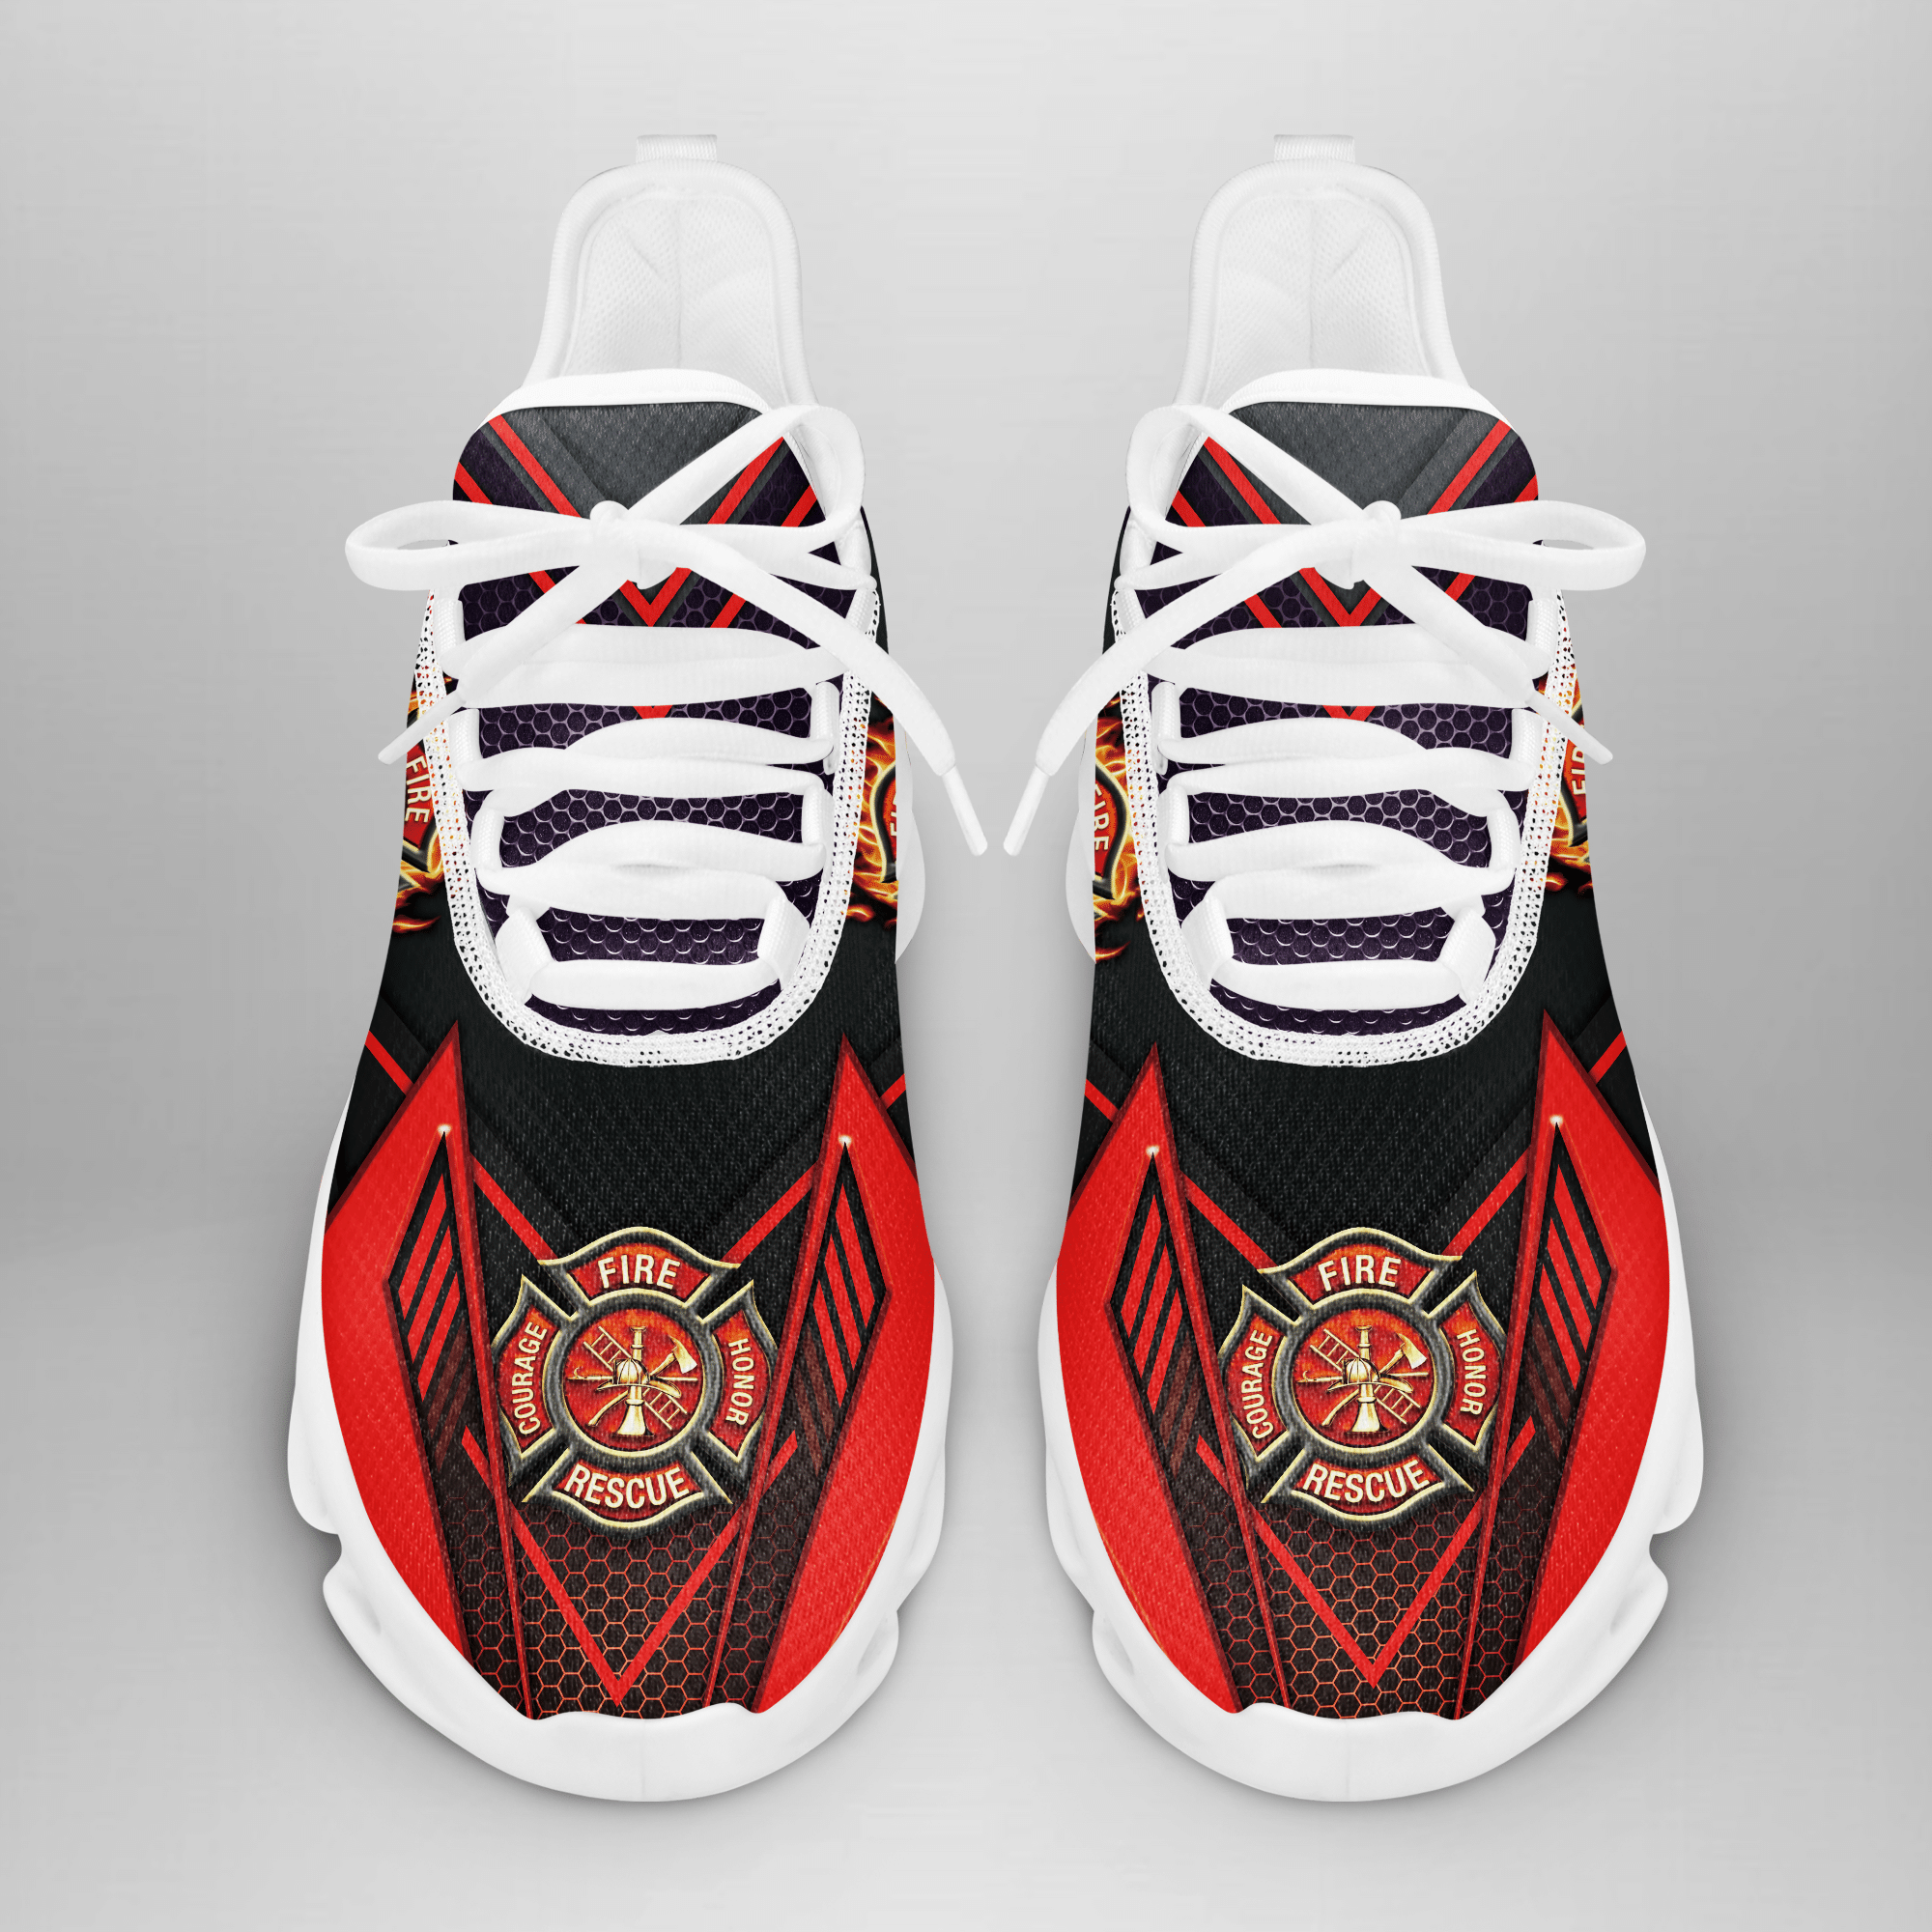 Firefighter Back to the Red Max Soul Replica Sneaker